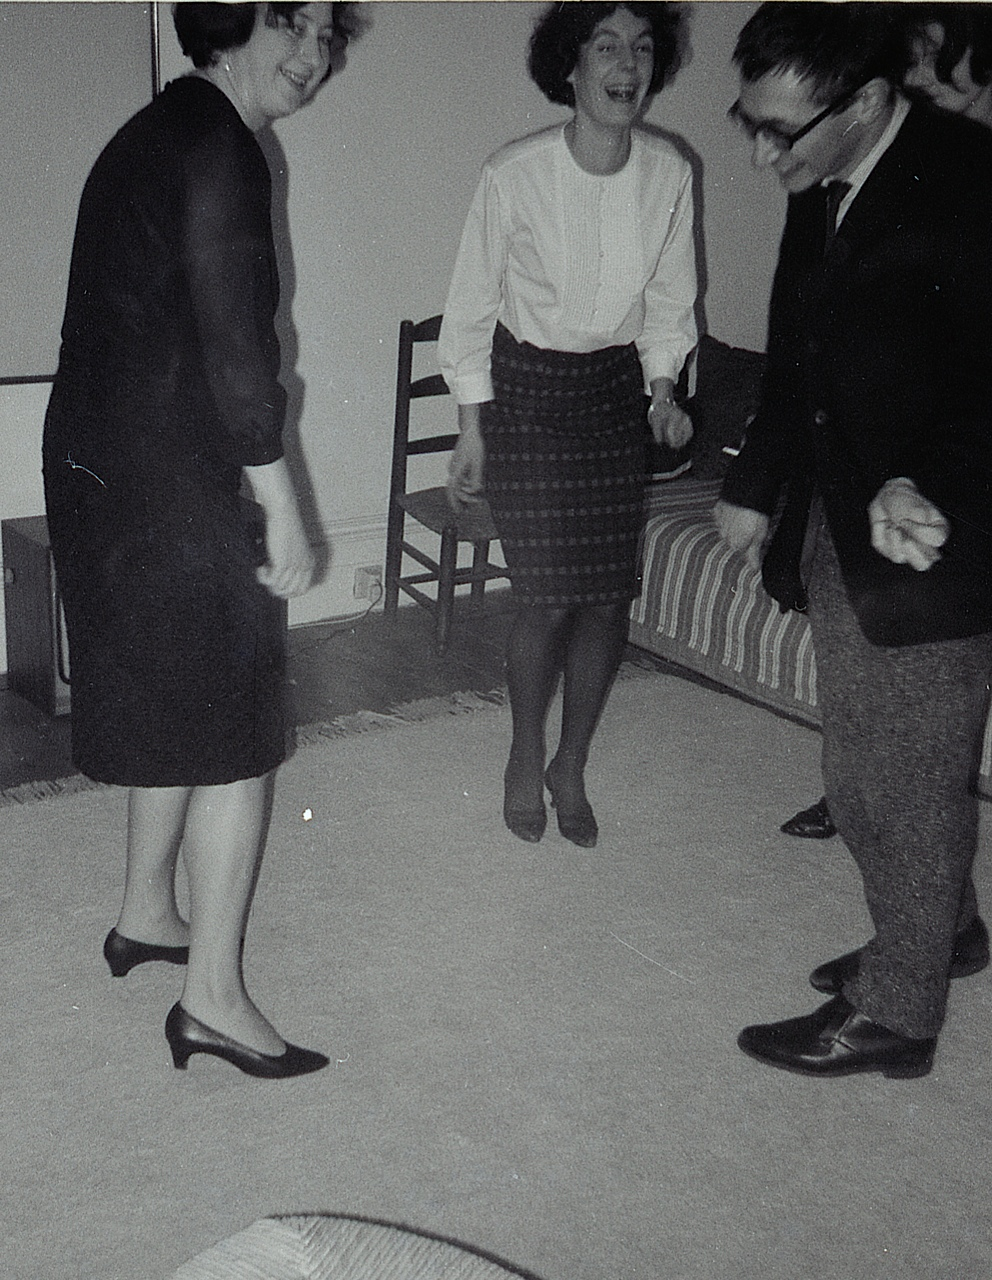 Sheila Girling, Jane Kasmin and John Kasmin dancing at the Kasmins' home in the early 1960s. Kasmin at this time had no gallery and was selling from home, holding 'salons' every Tuesday.